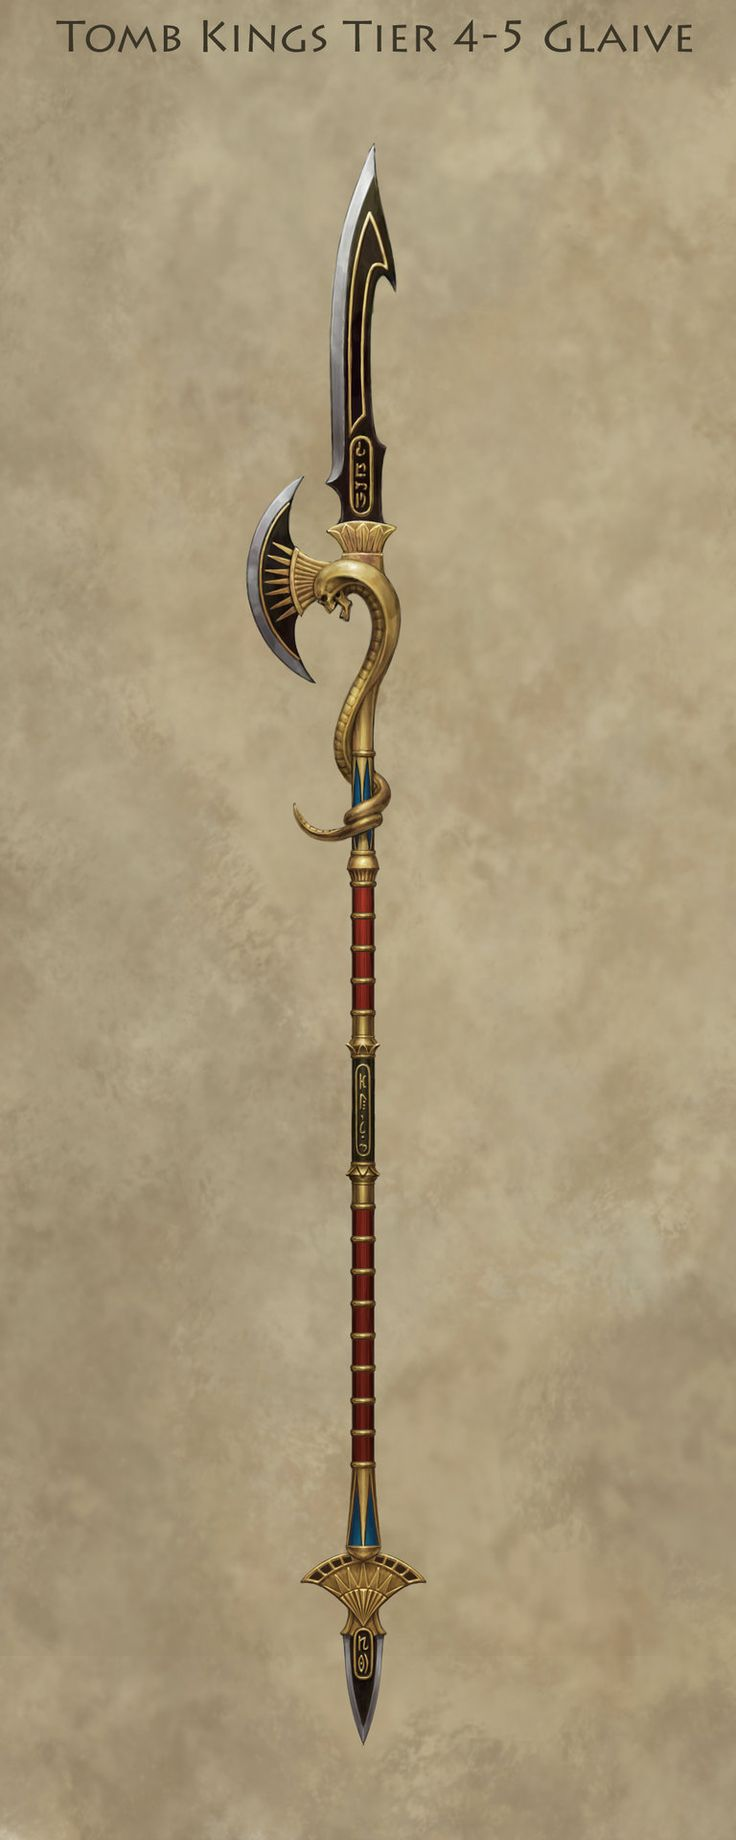 ArtStation - Tomb King Glaive, Sven Bybee